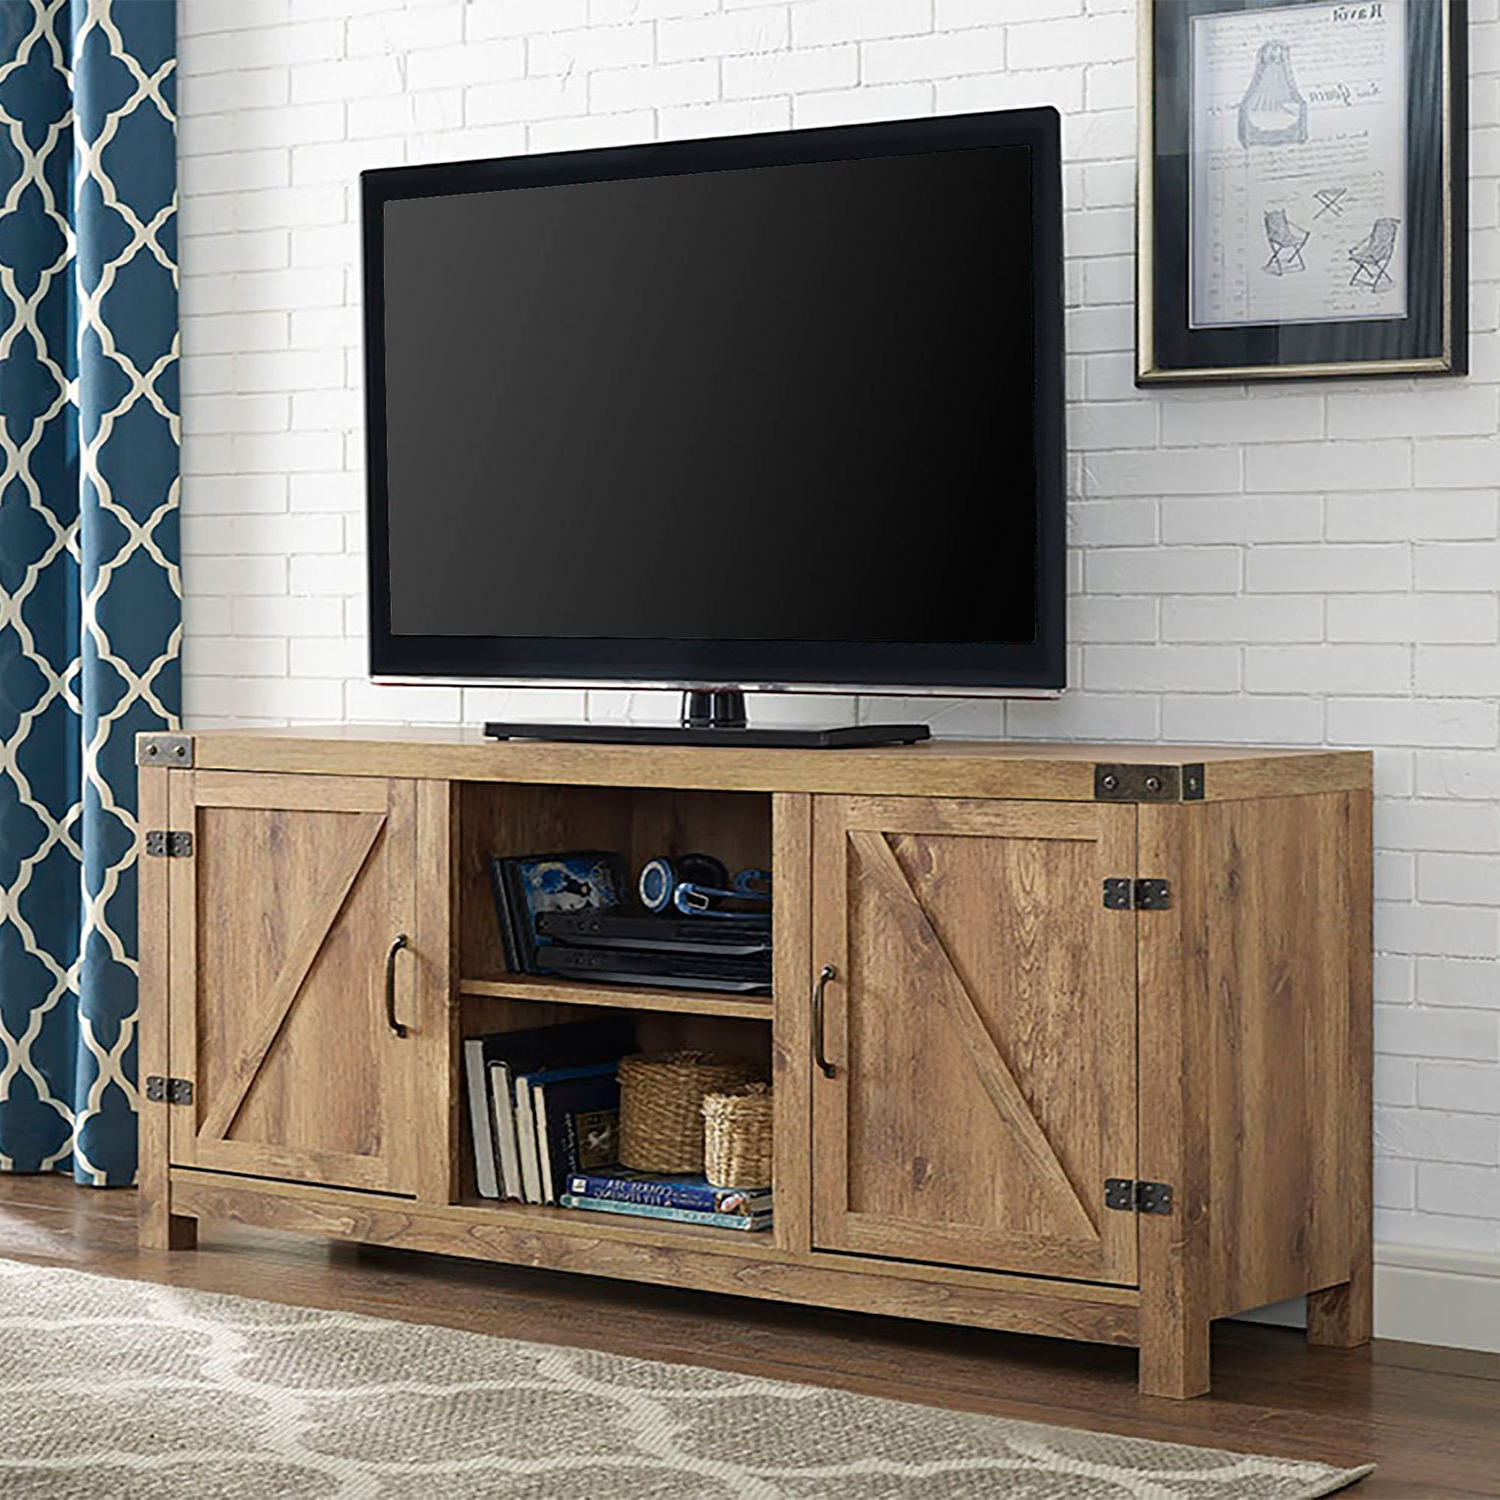 Tv Console | Canyon Creek 84 Inch Entertainment Console And Hutch Inside Canyon 74 Inch Tv Stands (Gallery 11 of 20)